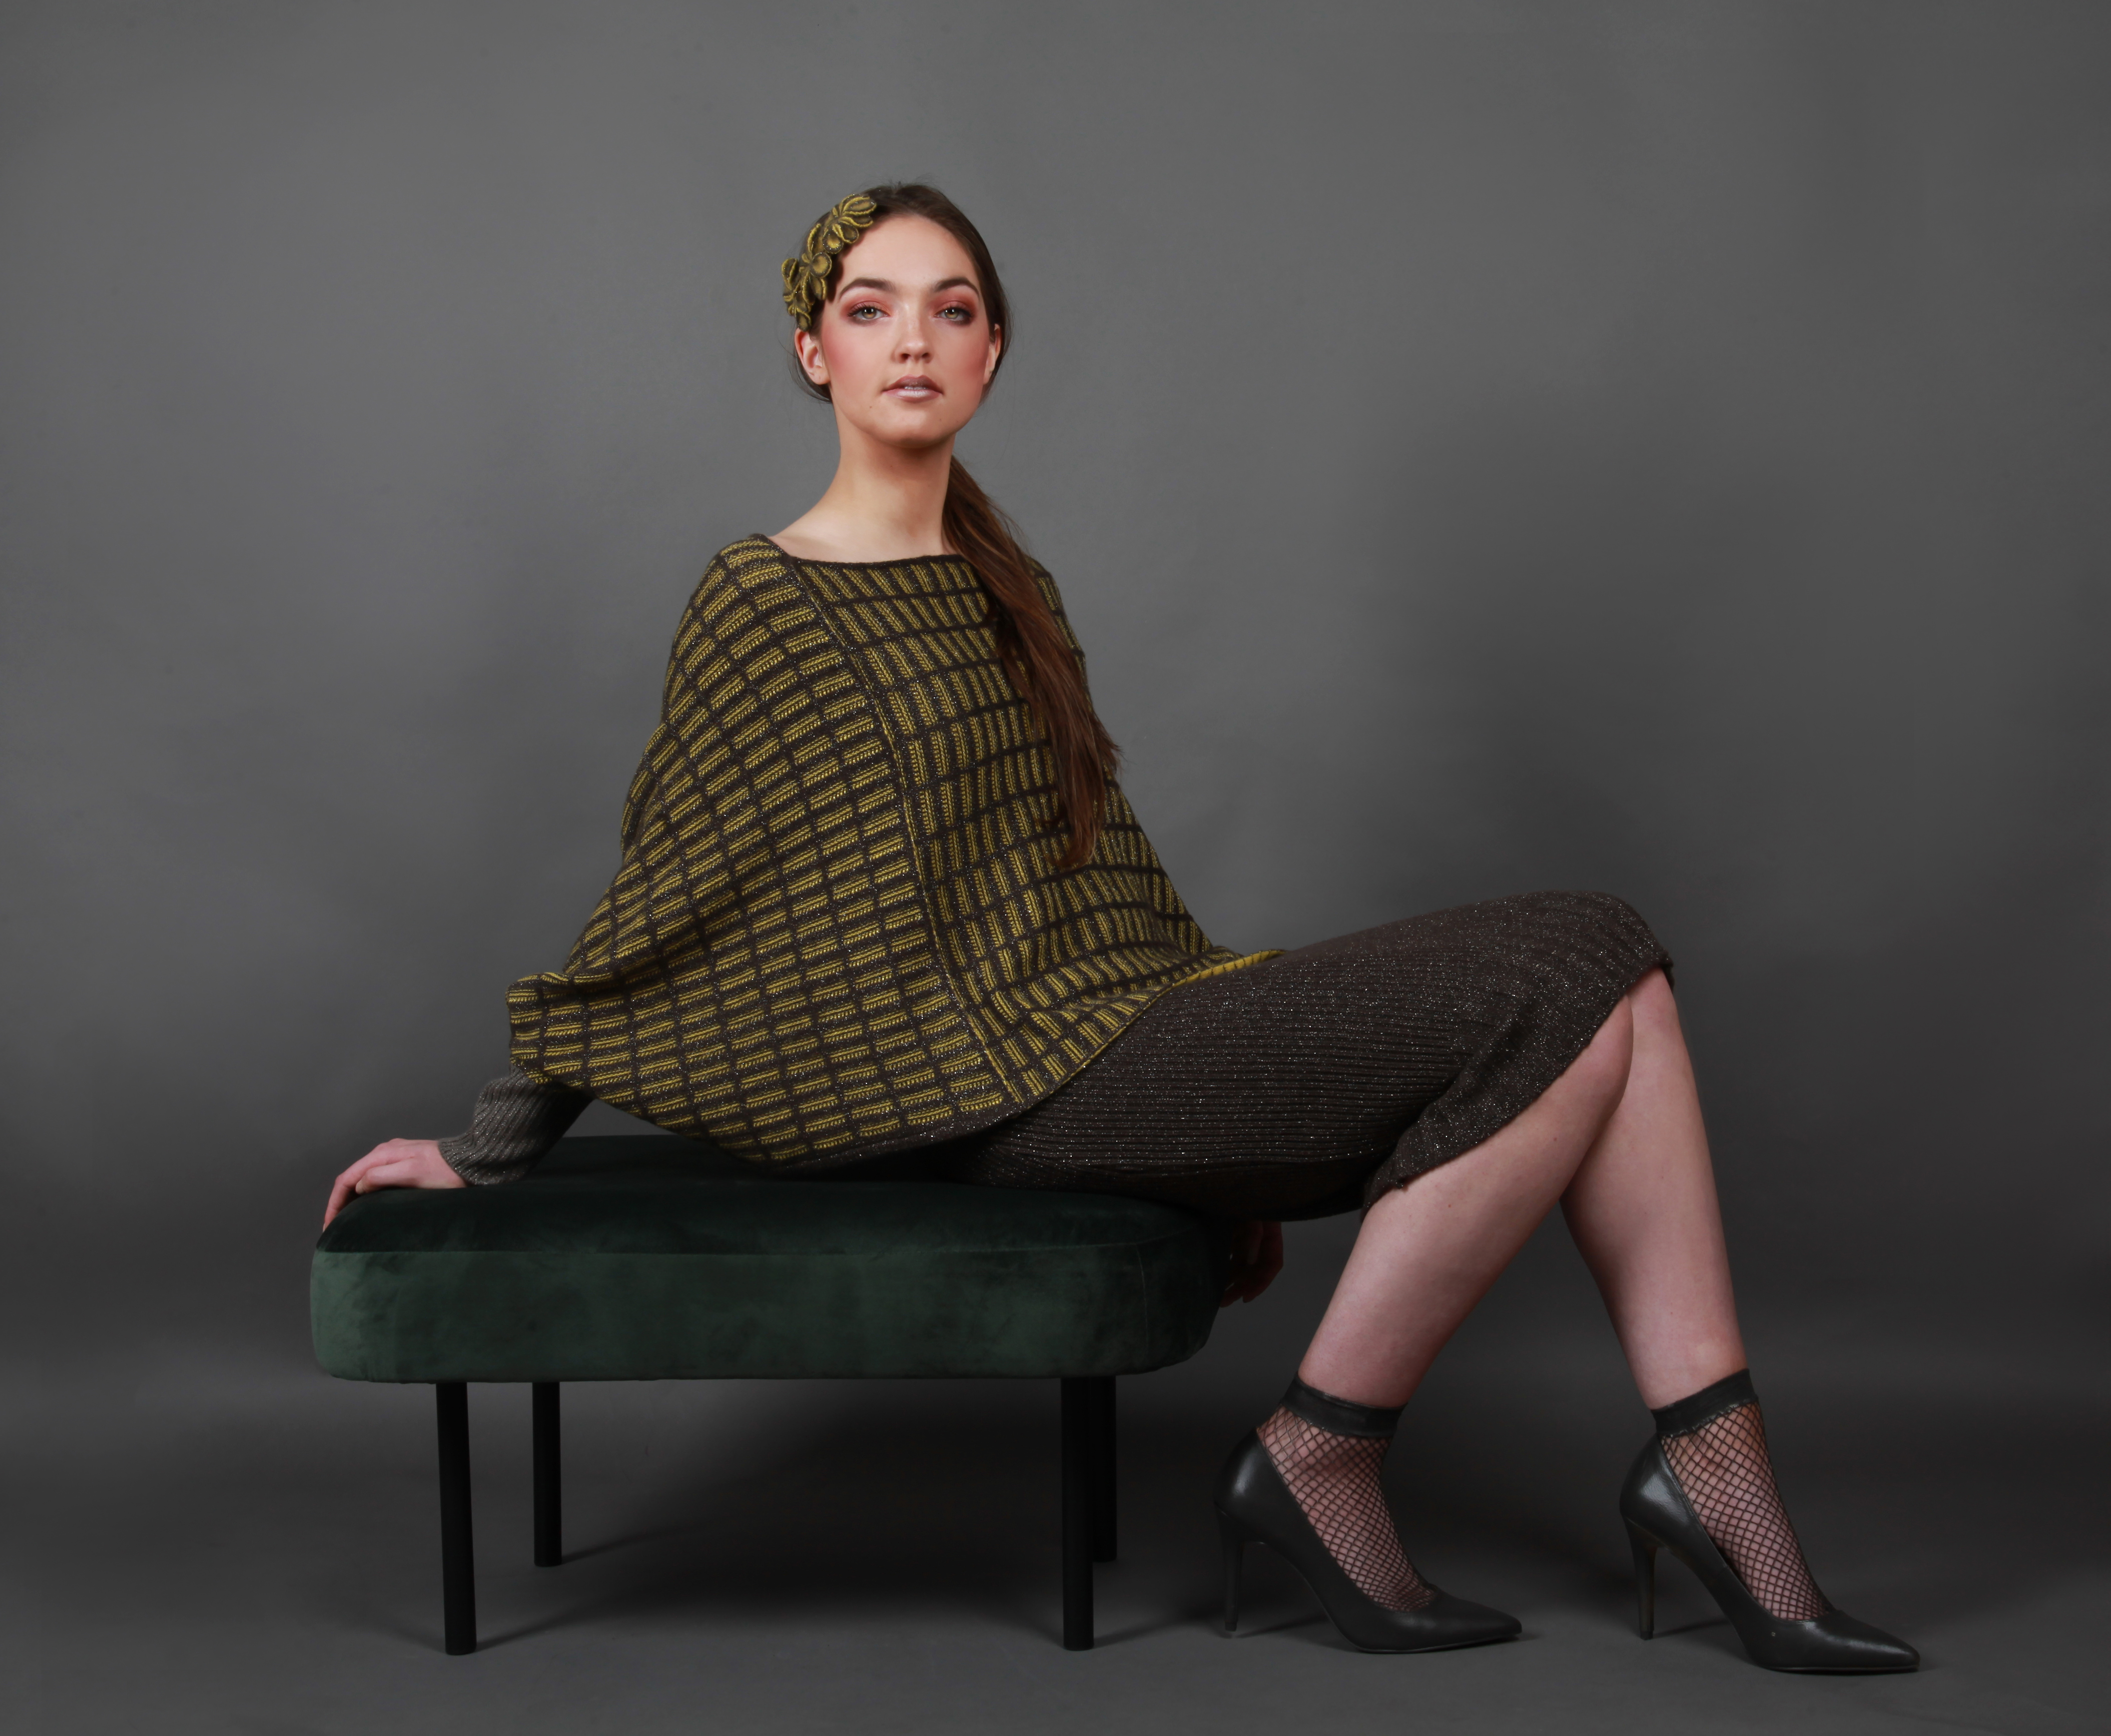 Small textured patterned poncho style jumper